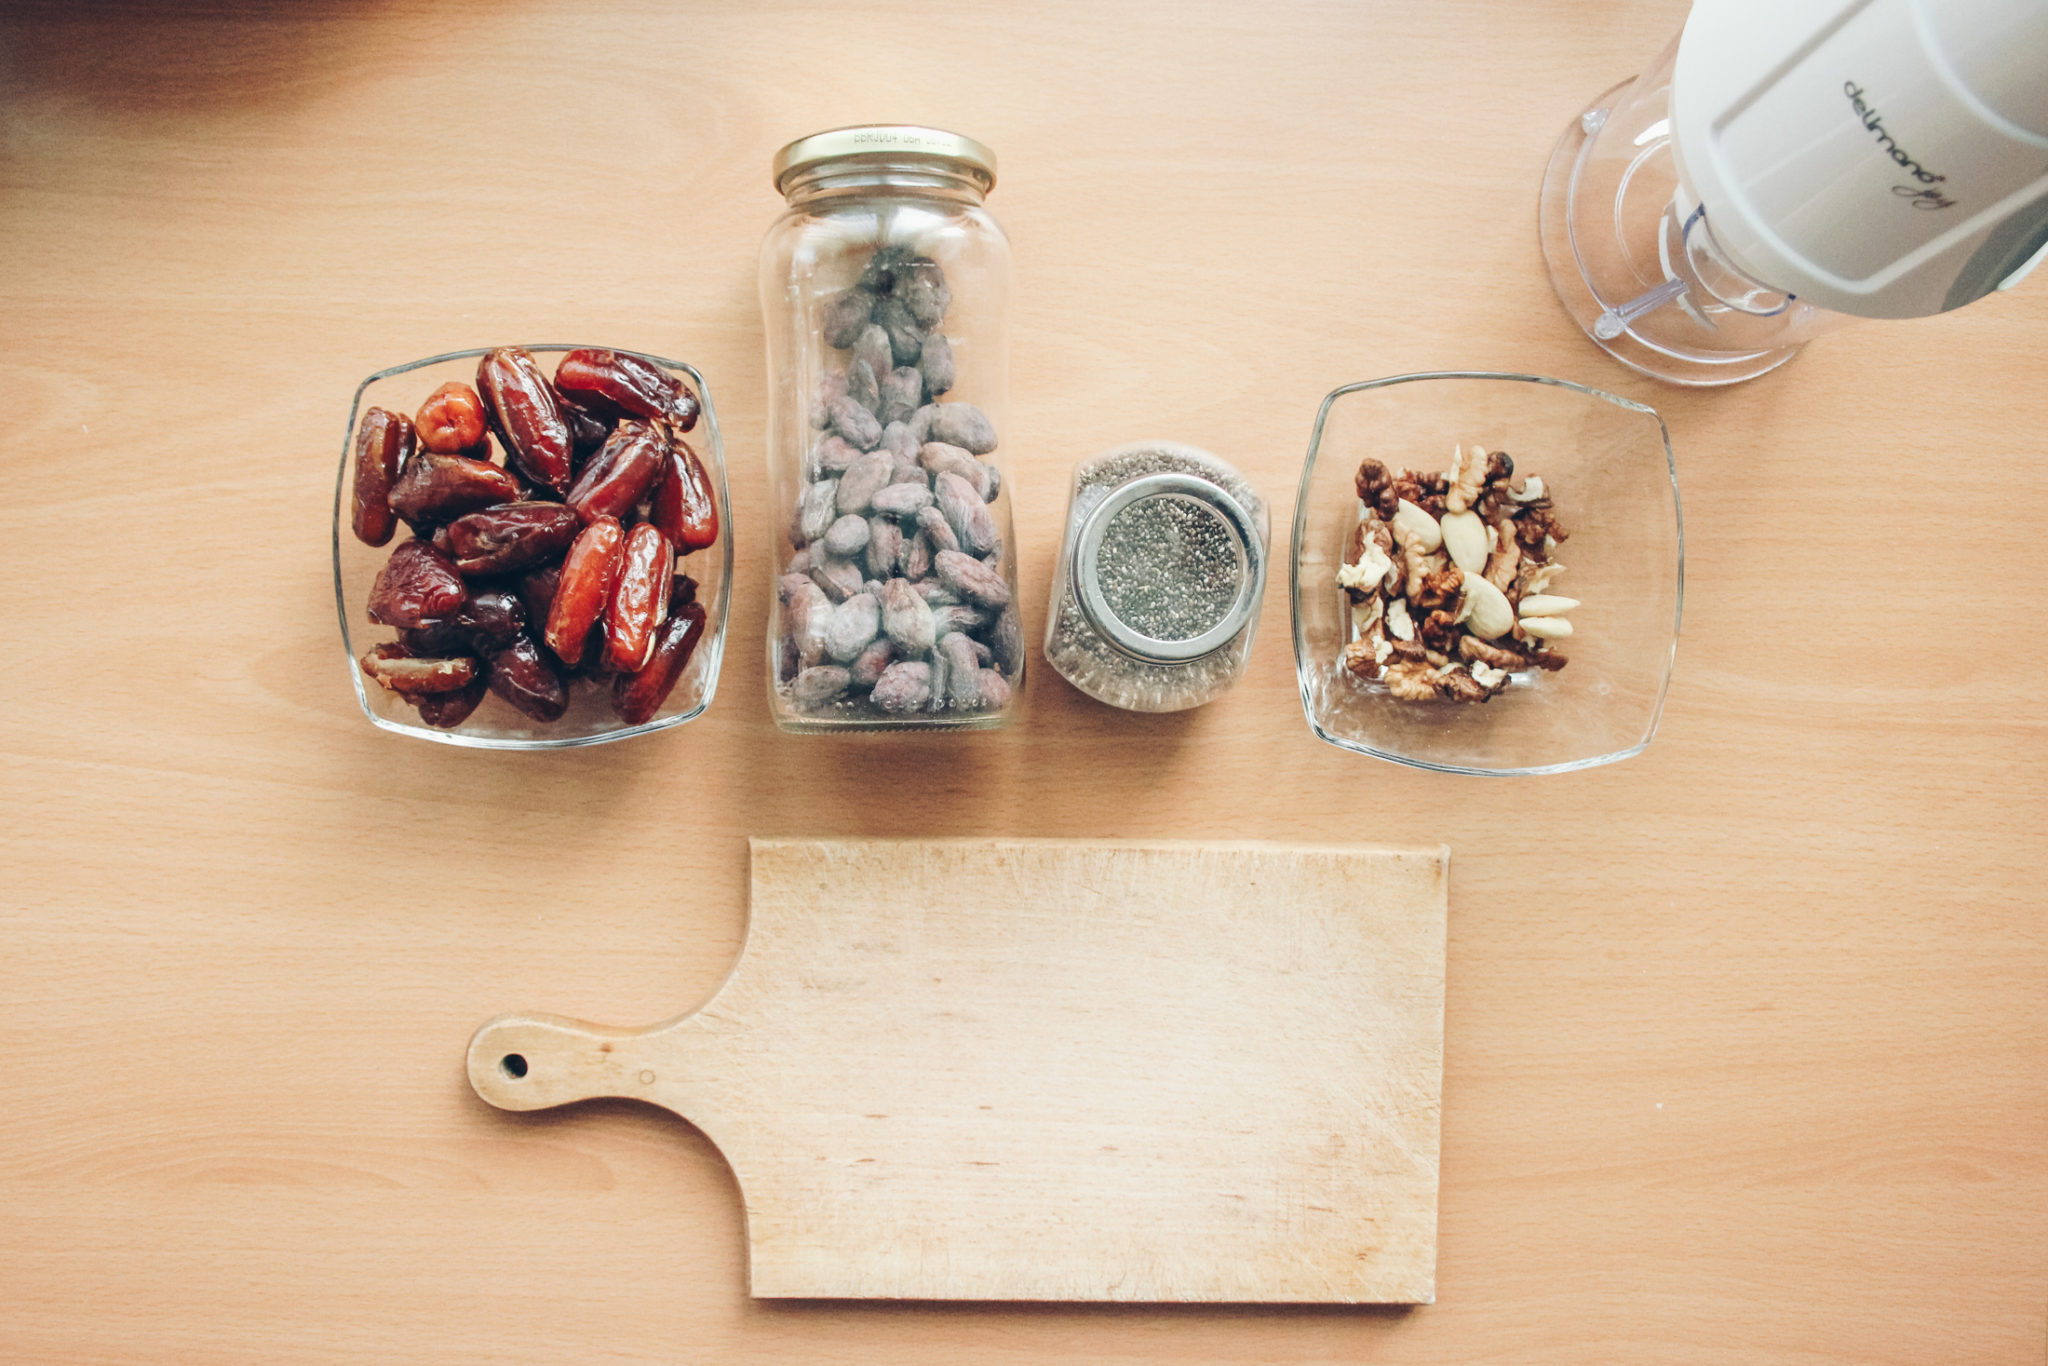 Raw energy bites recipe with dates, nuts and no added sugar by blogger Michaella from Quite a Looker